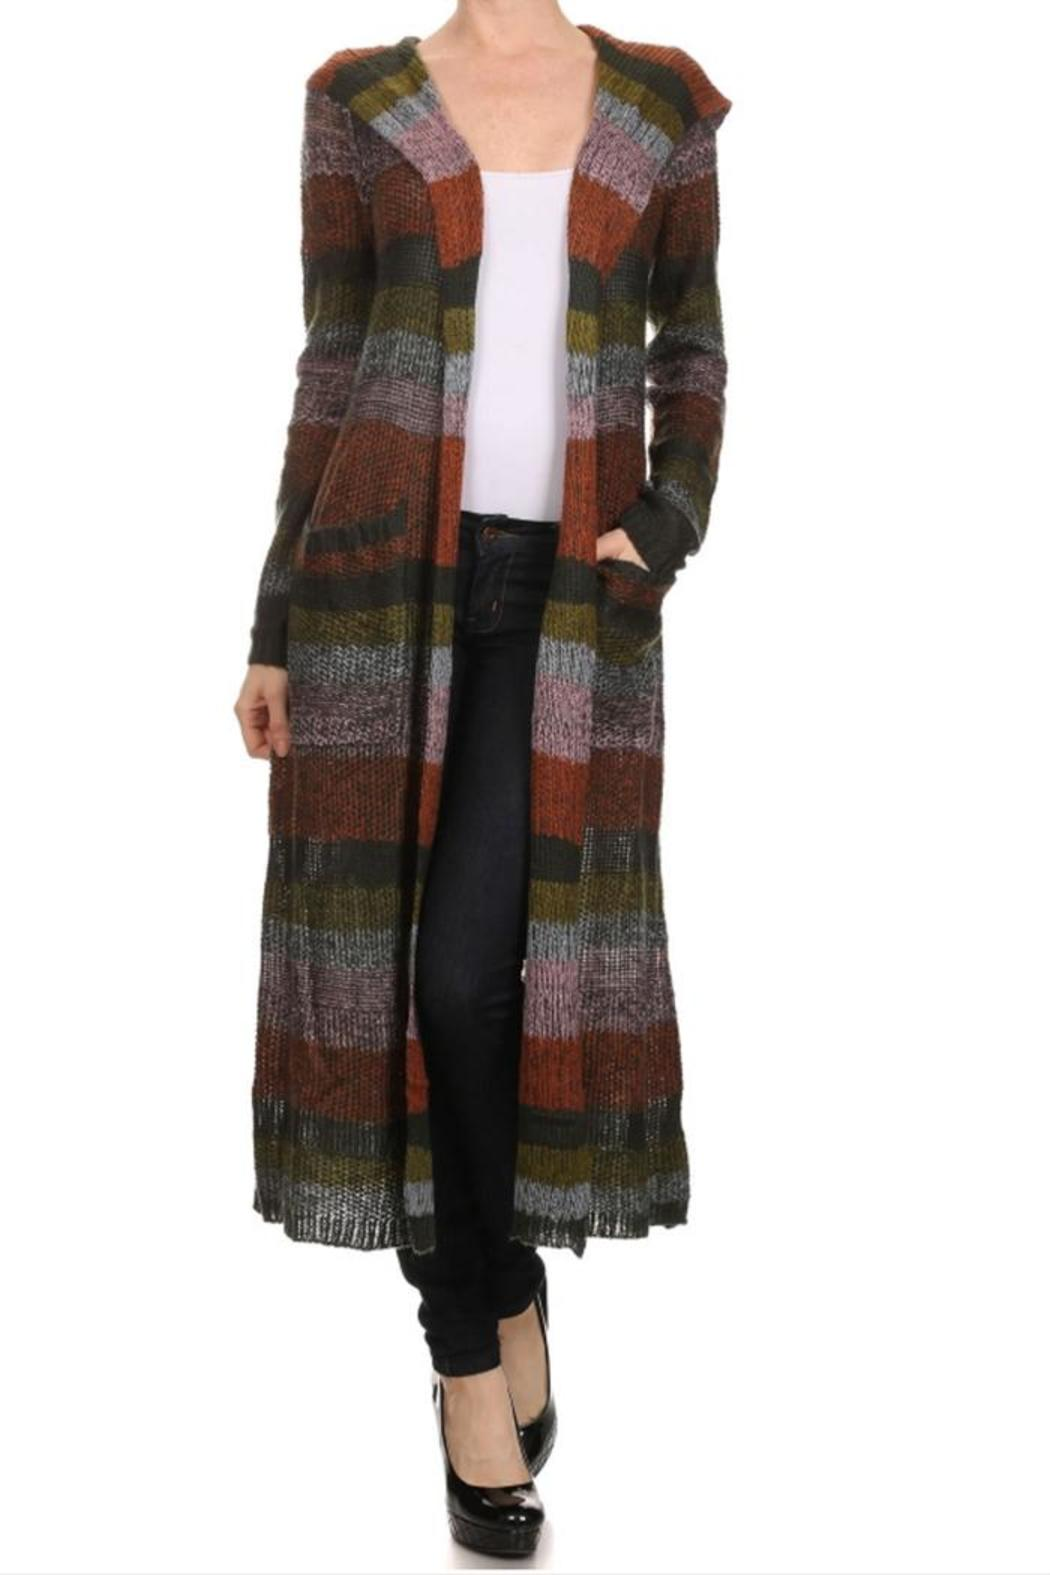 Mystree Hooded Maxi Cardigan from South Carolina by Flirt Boutique ...